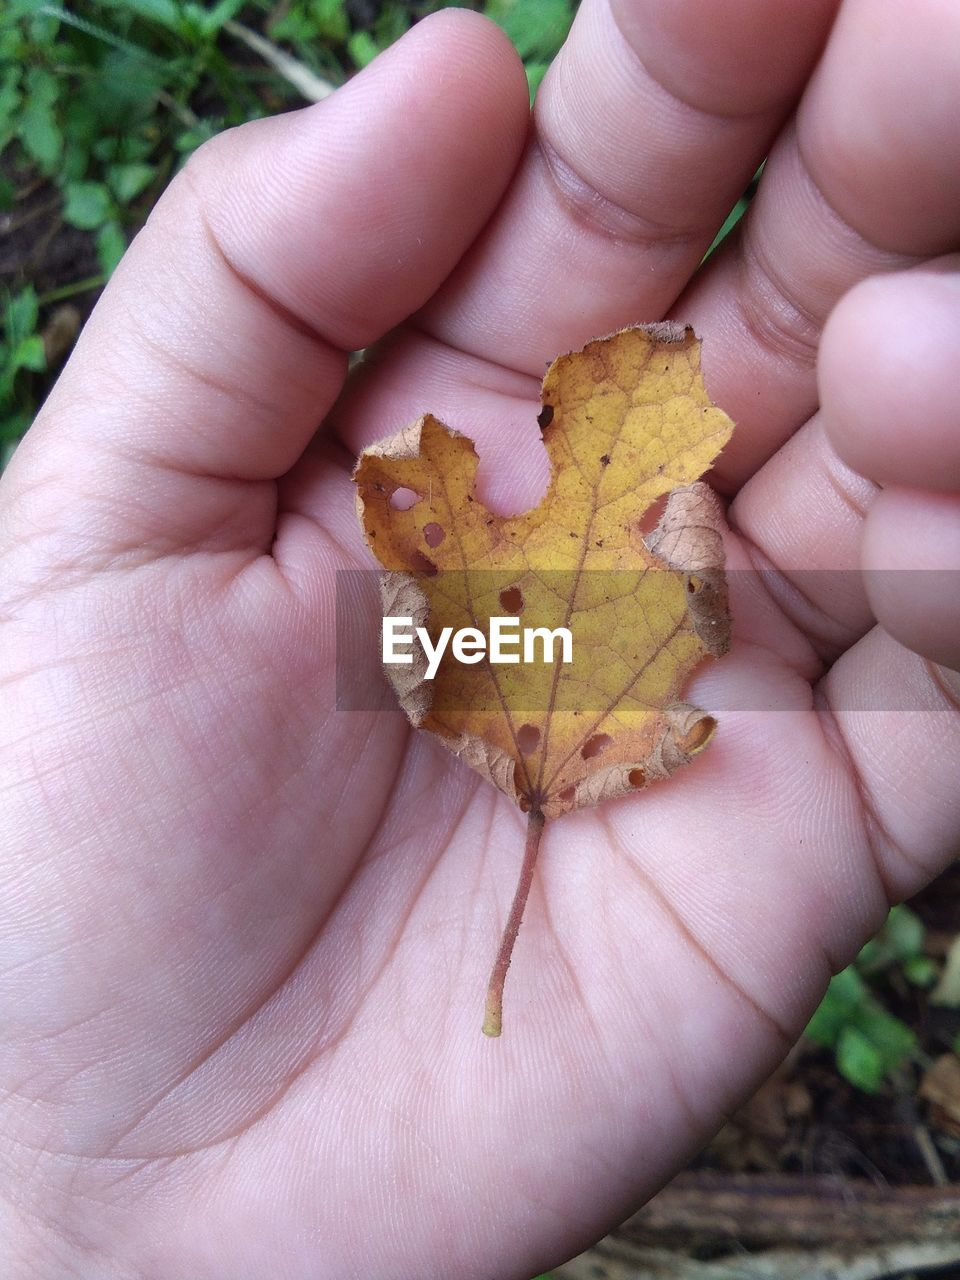 human body part, human hand, hand, one person, holding, body part, unrecognizable person, real people, day, close-up, personal perspective, nature, finger, plant part, leaf, human finger, dry, lifestyles, autumn, outdoors, change, leaves, natural condition